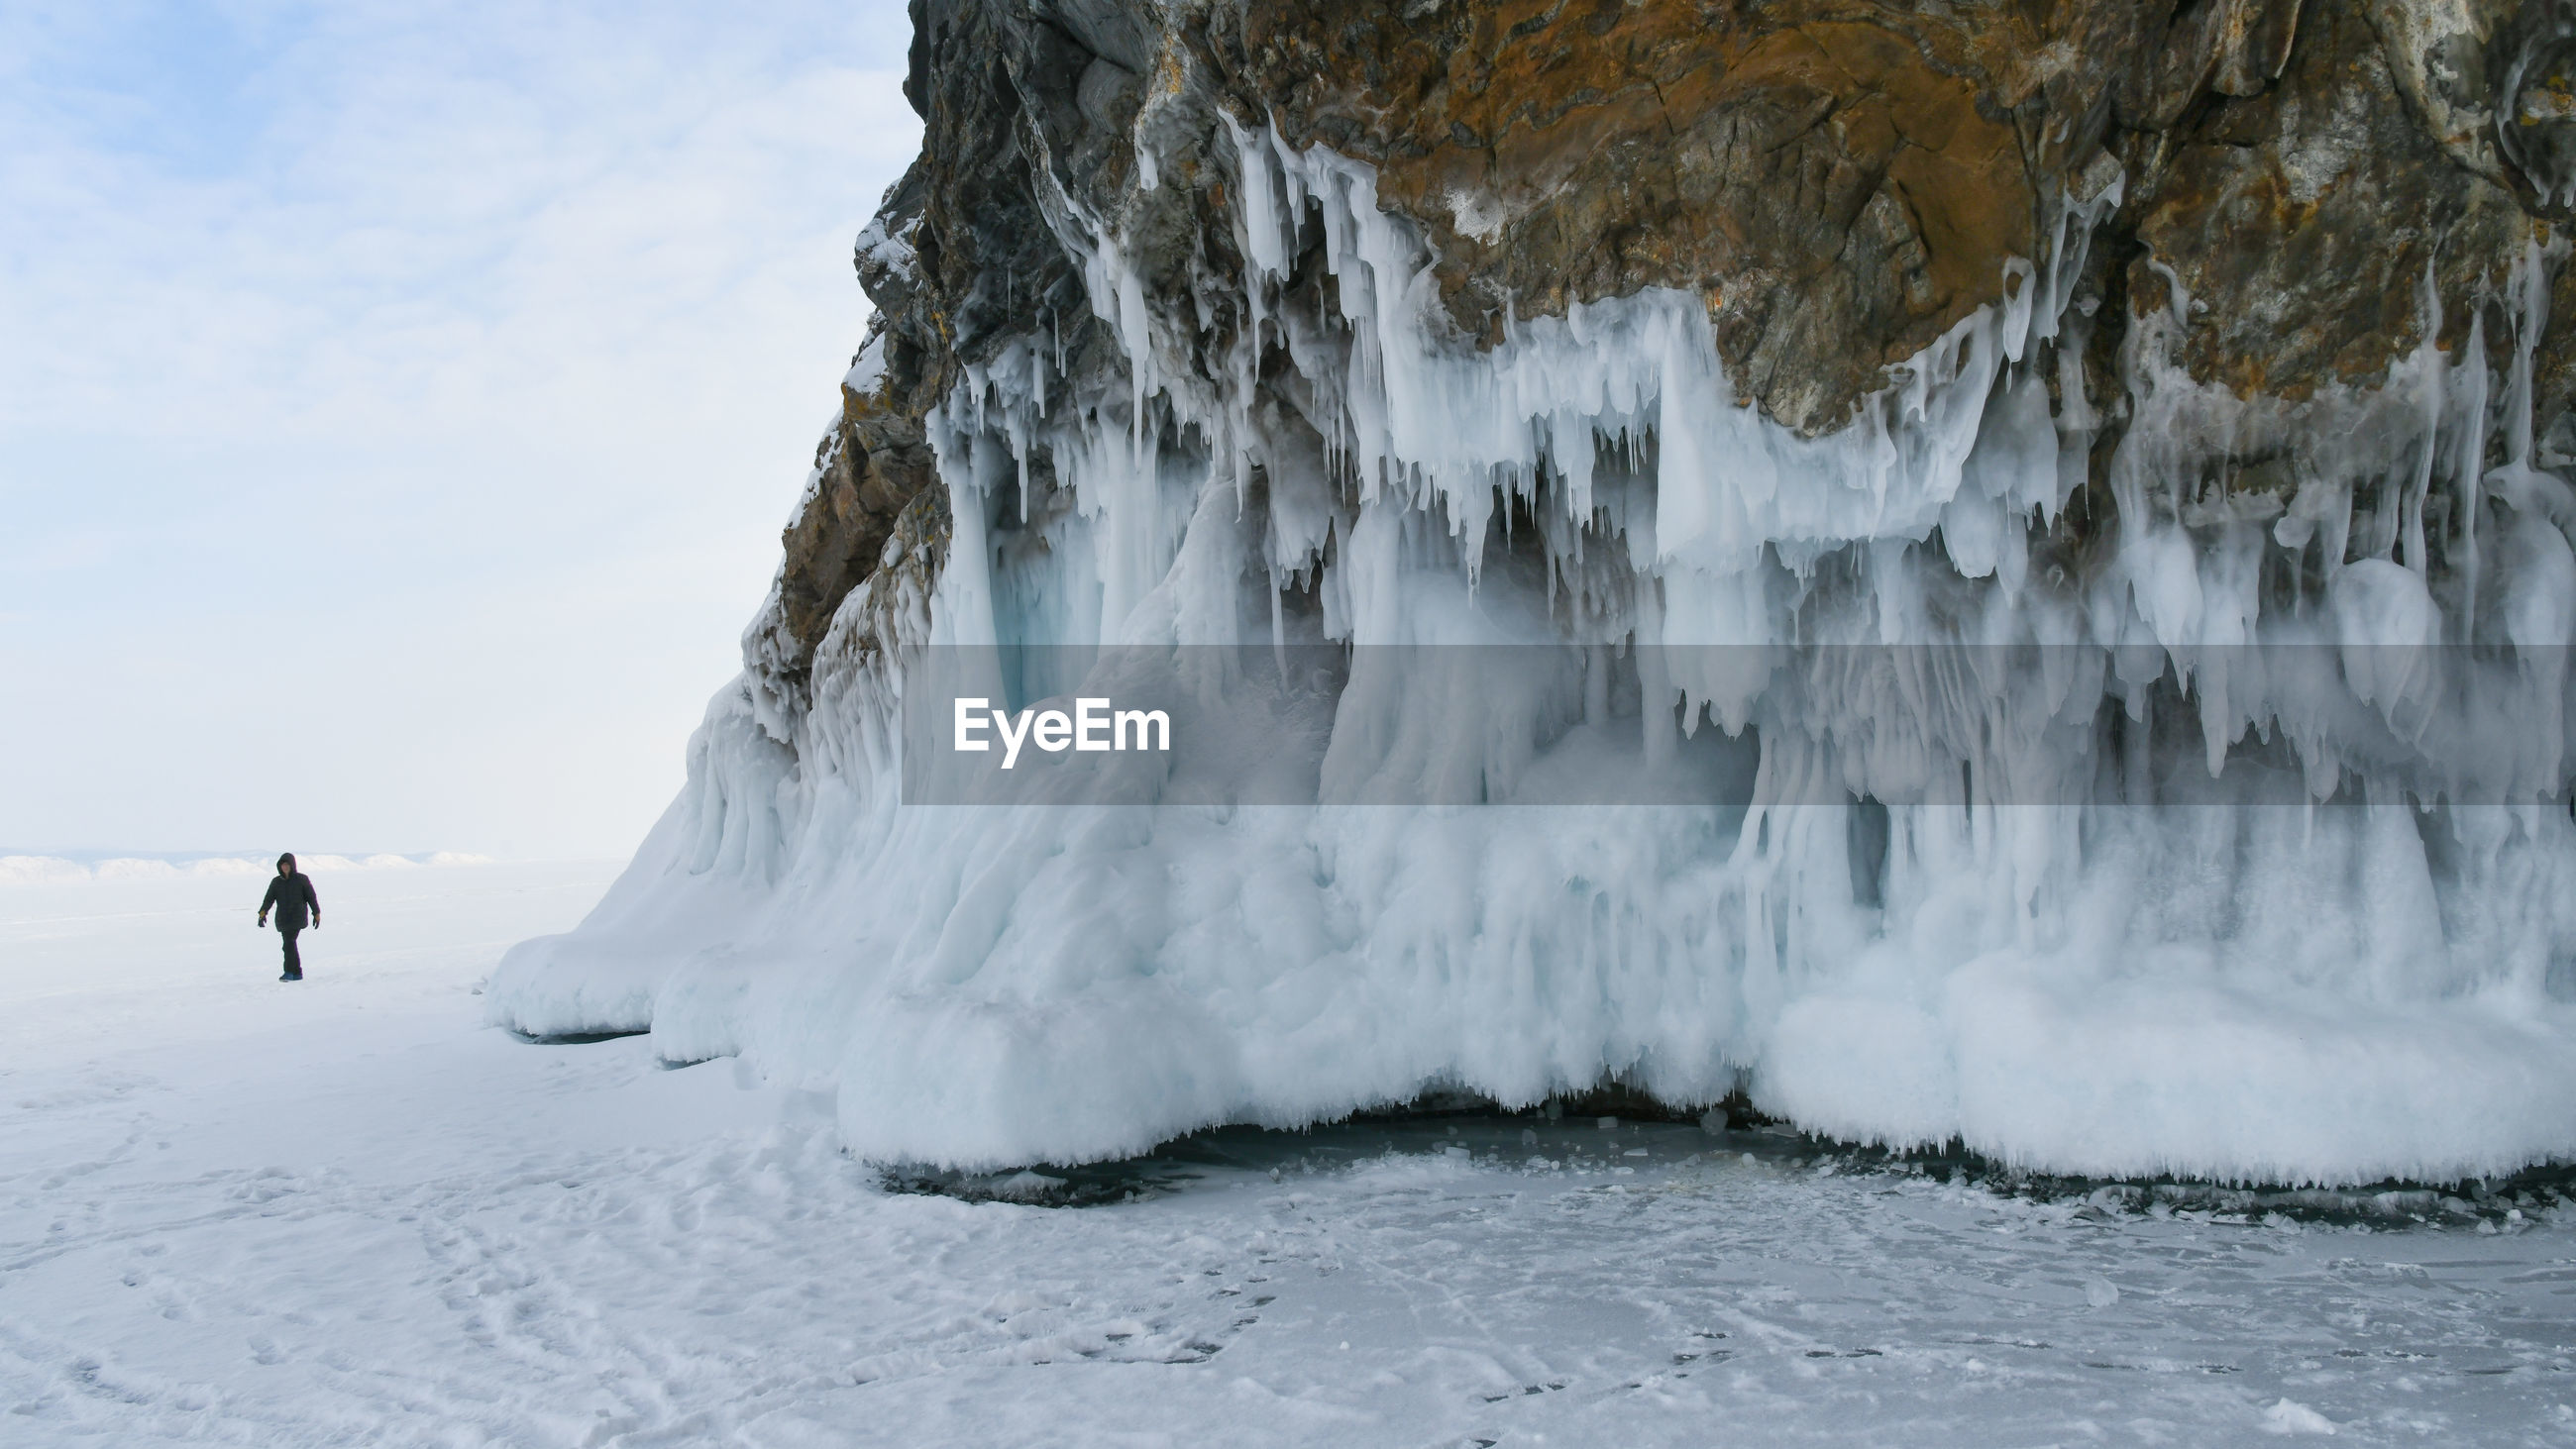 PANORAMIC SHOT OF PERSON STANDING ON FROZEN SEA